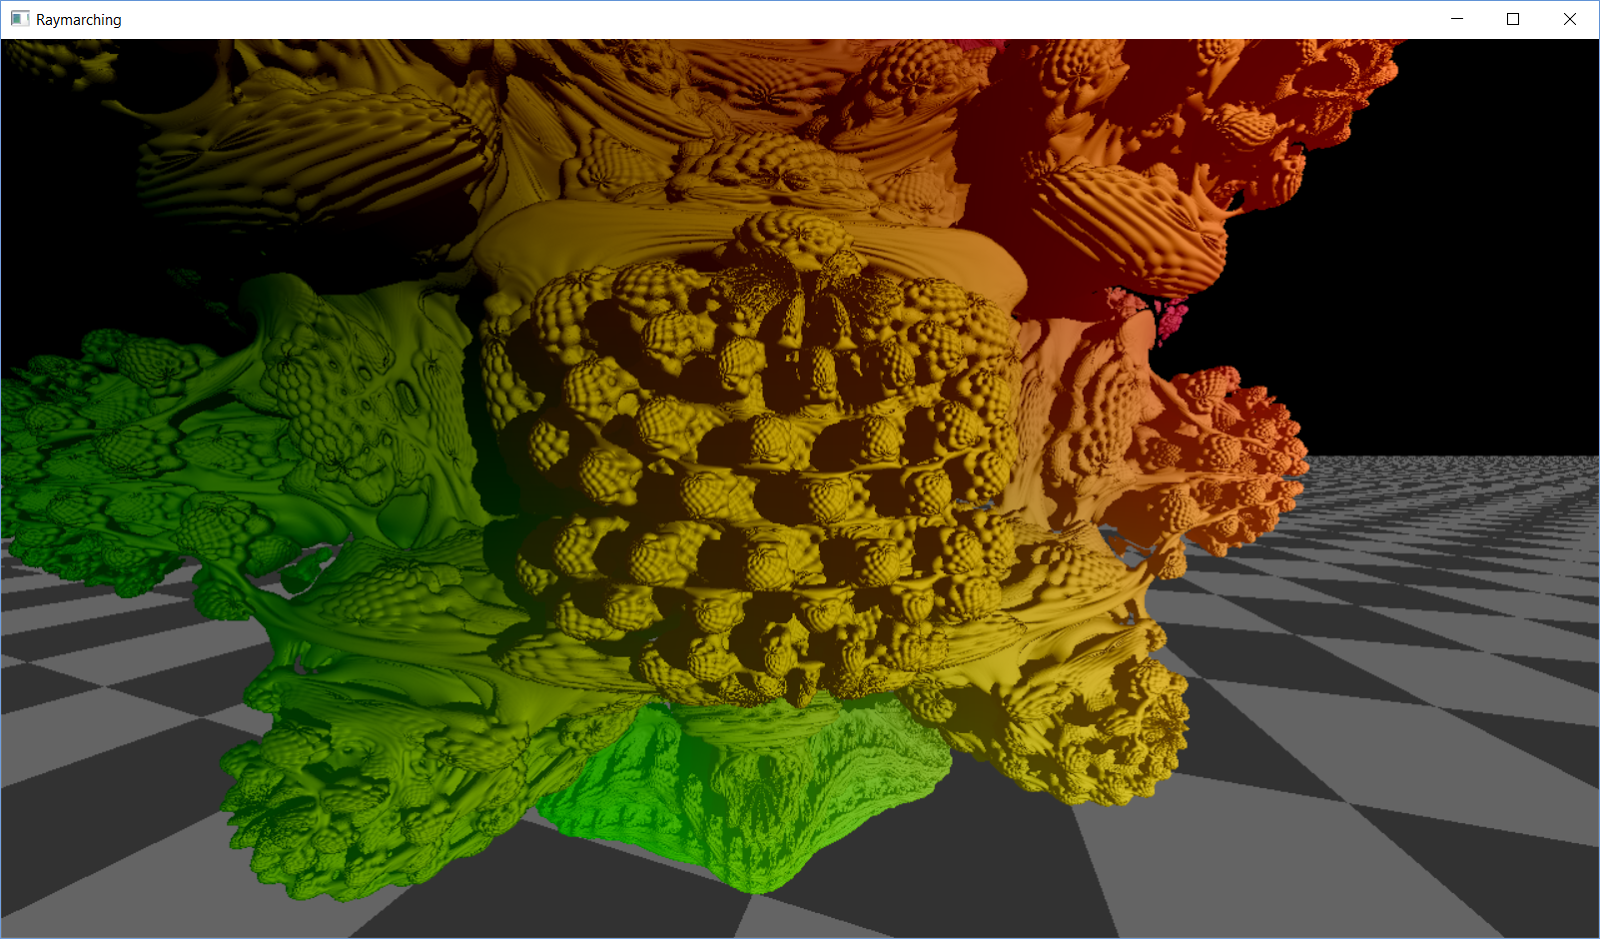 Realtime Raymarching Mandelbulb